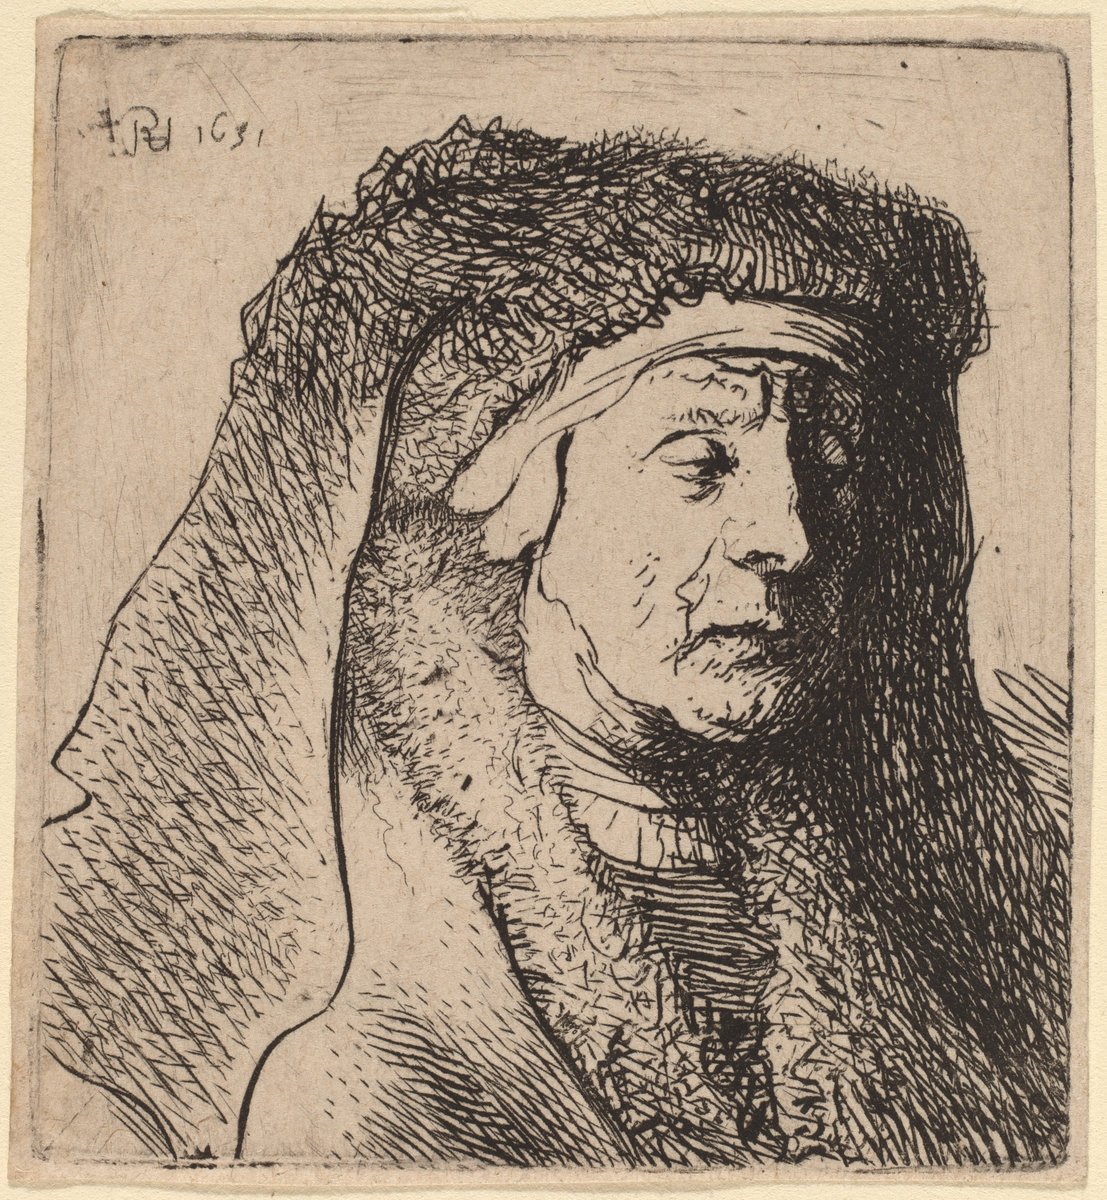 Rembrandt Harmenszoon van Rijn. Bust of an Old Woman in a Furred Cloak and Heavy Headdress